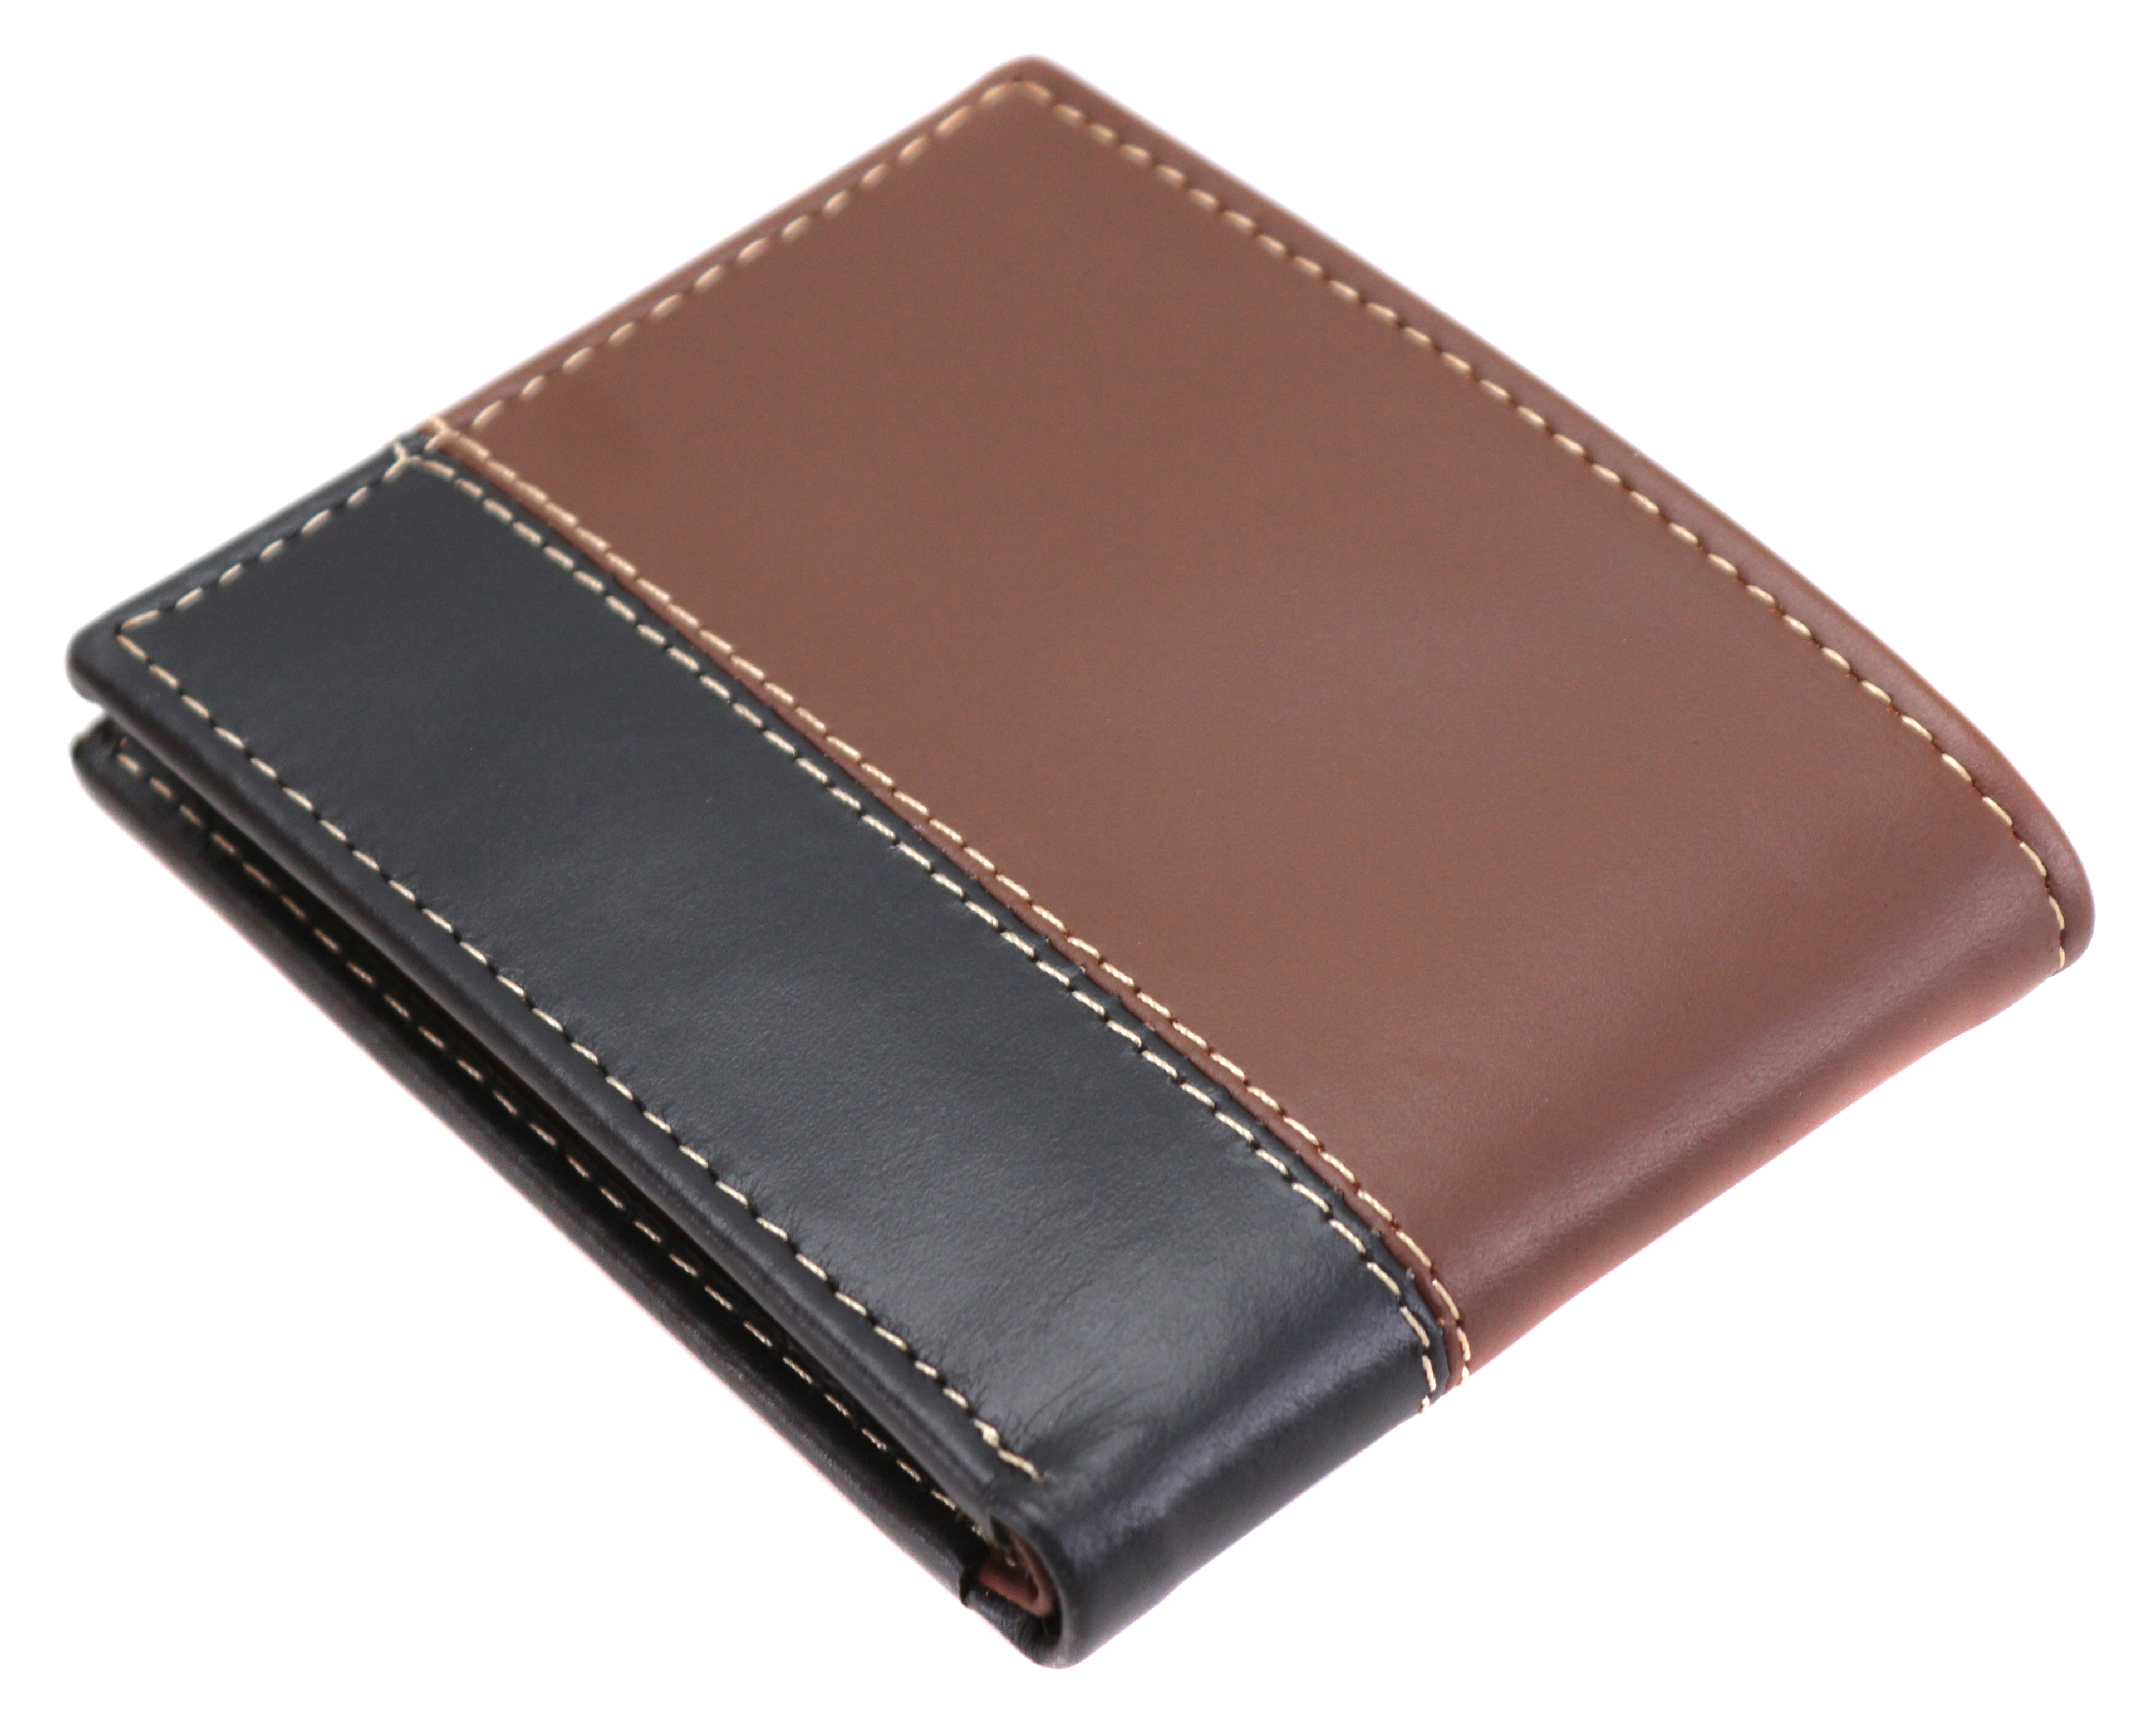 Timberland-Men-039-s-Genuine-Two-Tone-Leather-Credit-Card-Billfold-Commuter-Wallet thumbnail 28